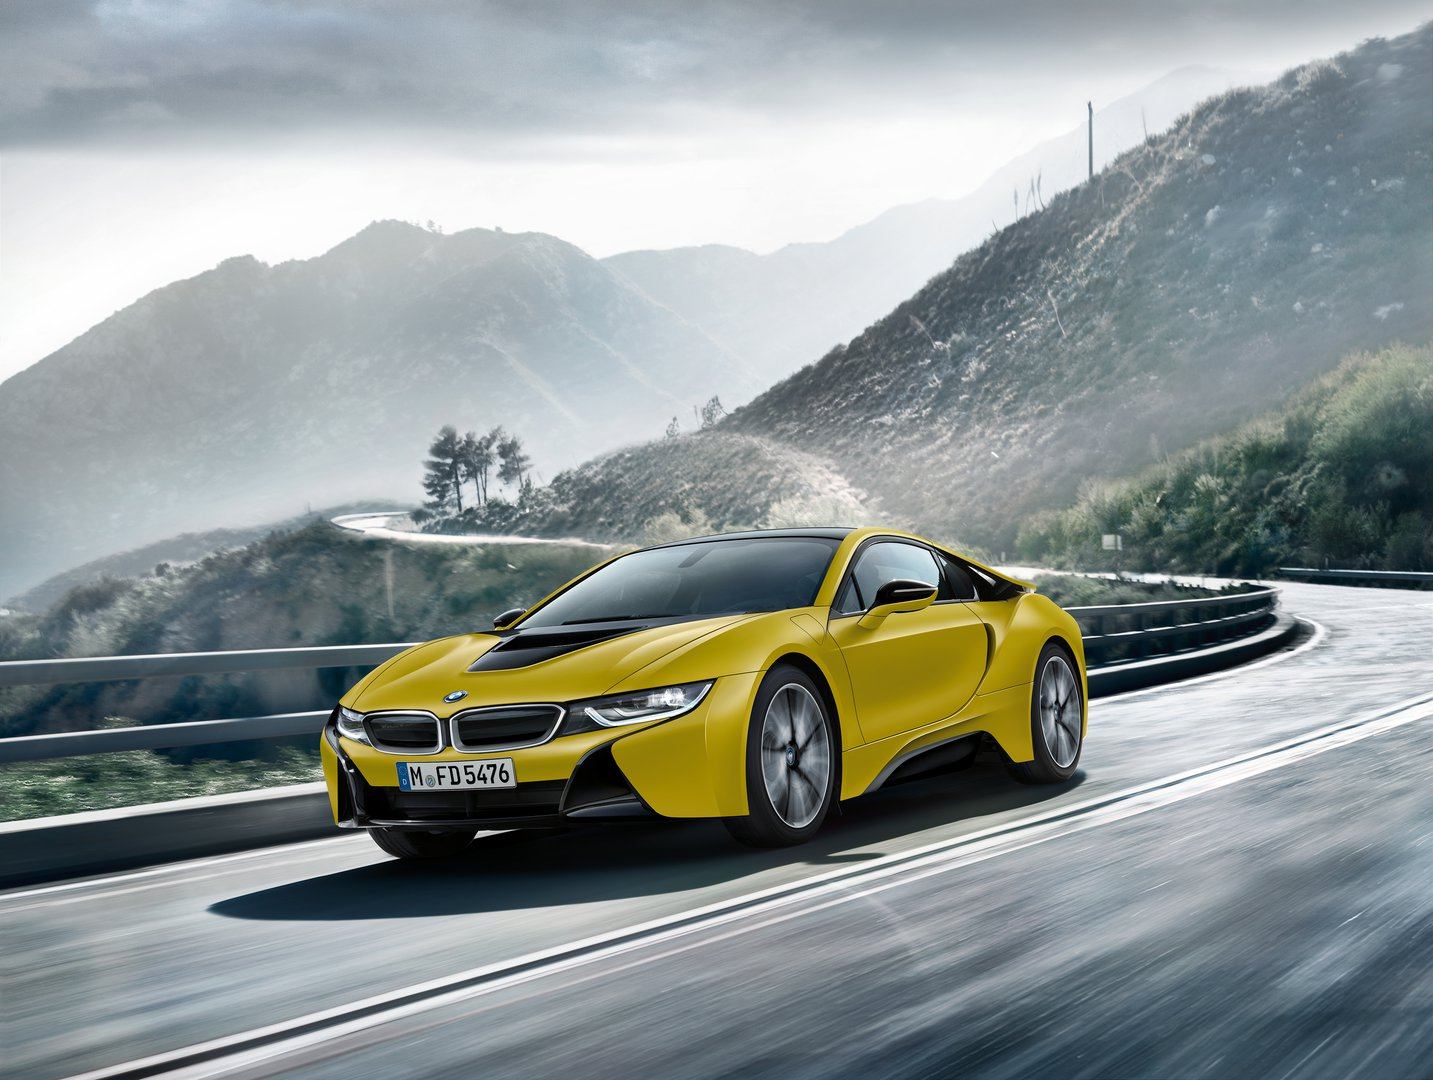 Bmw Comes To Shanghai With I8 Protonic Frozen Yellow Edition